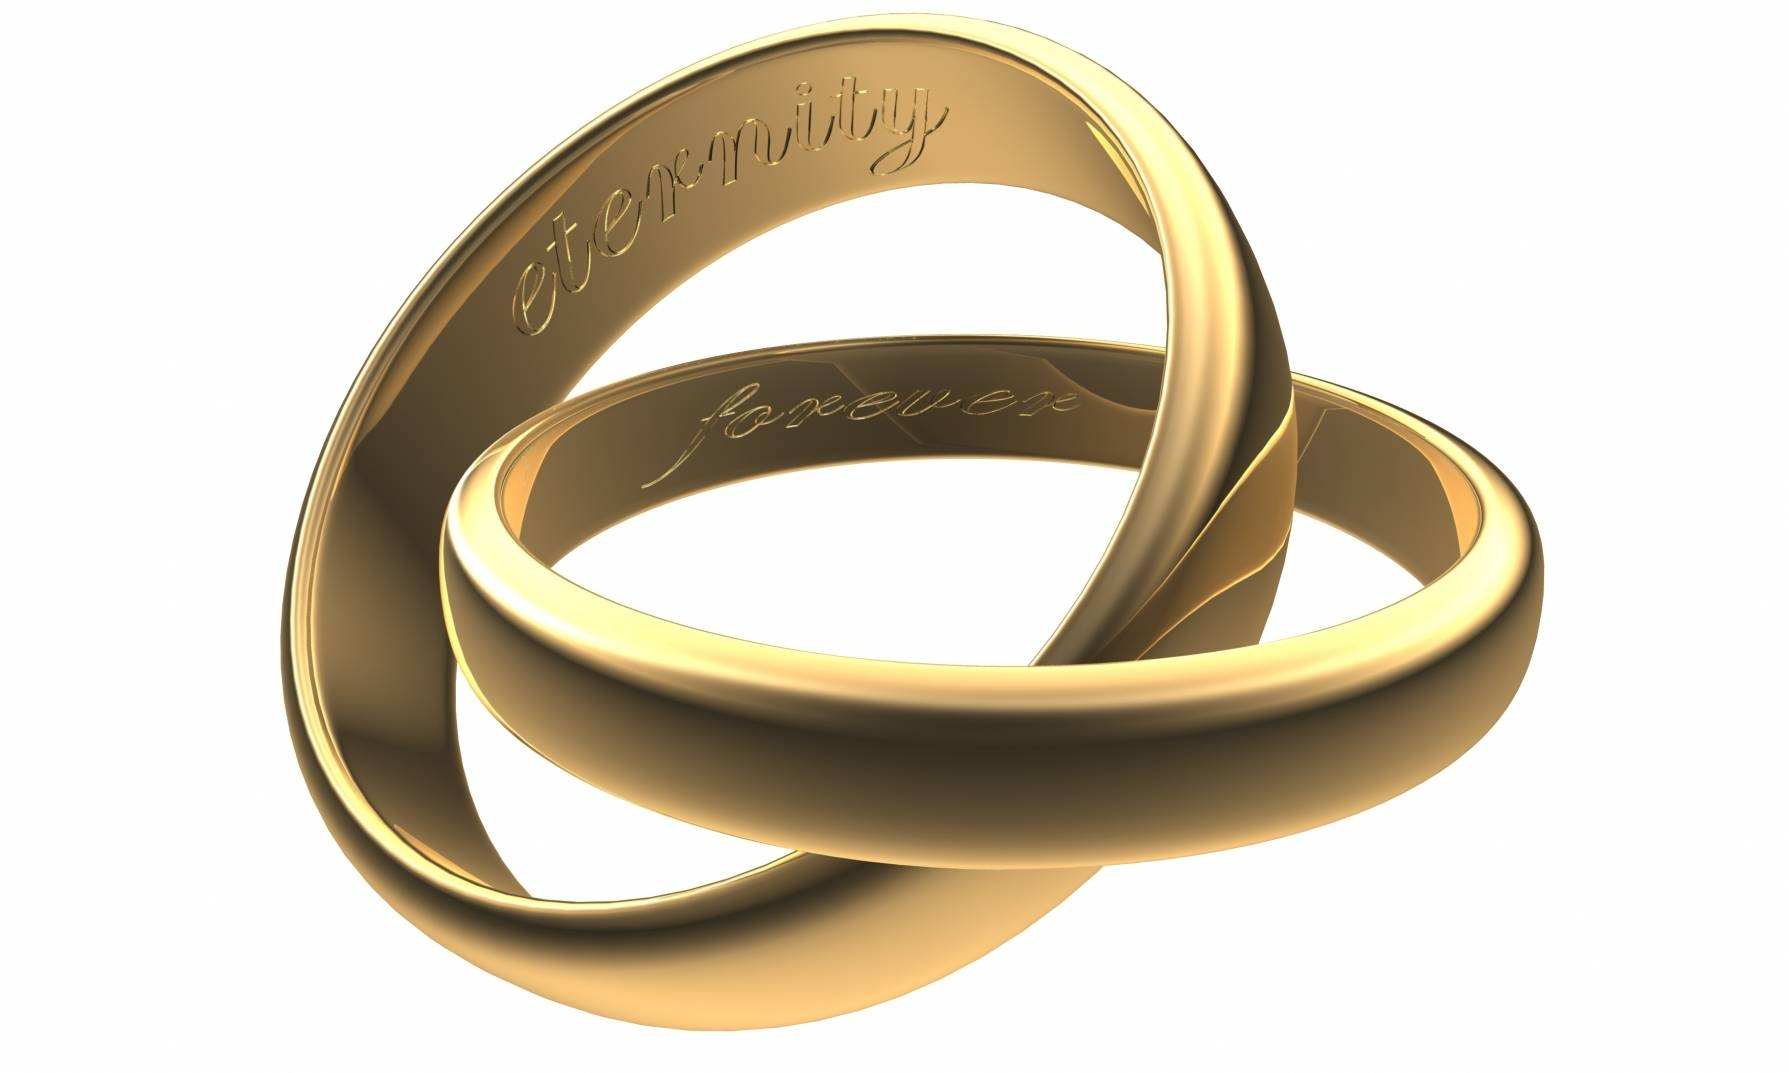 Engraved Wedding Bands | Wedding Band Engraving Throughout Intertwined Wedding Bands (View 6 of 15)